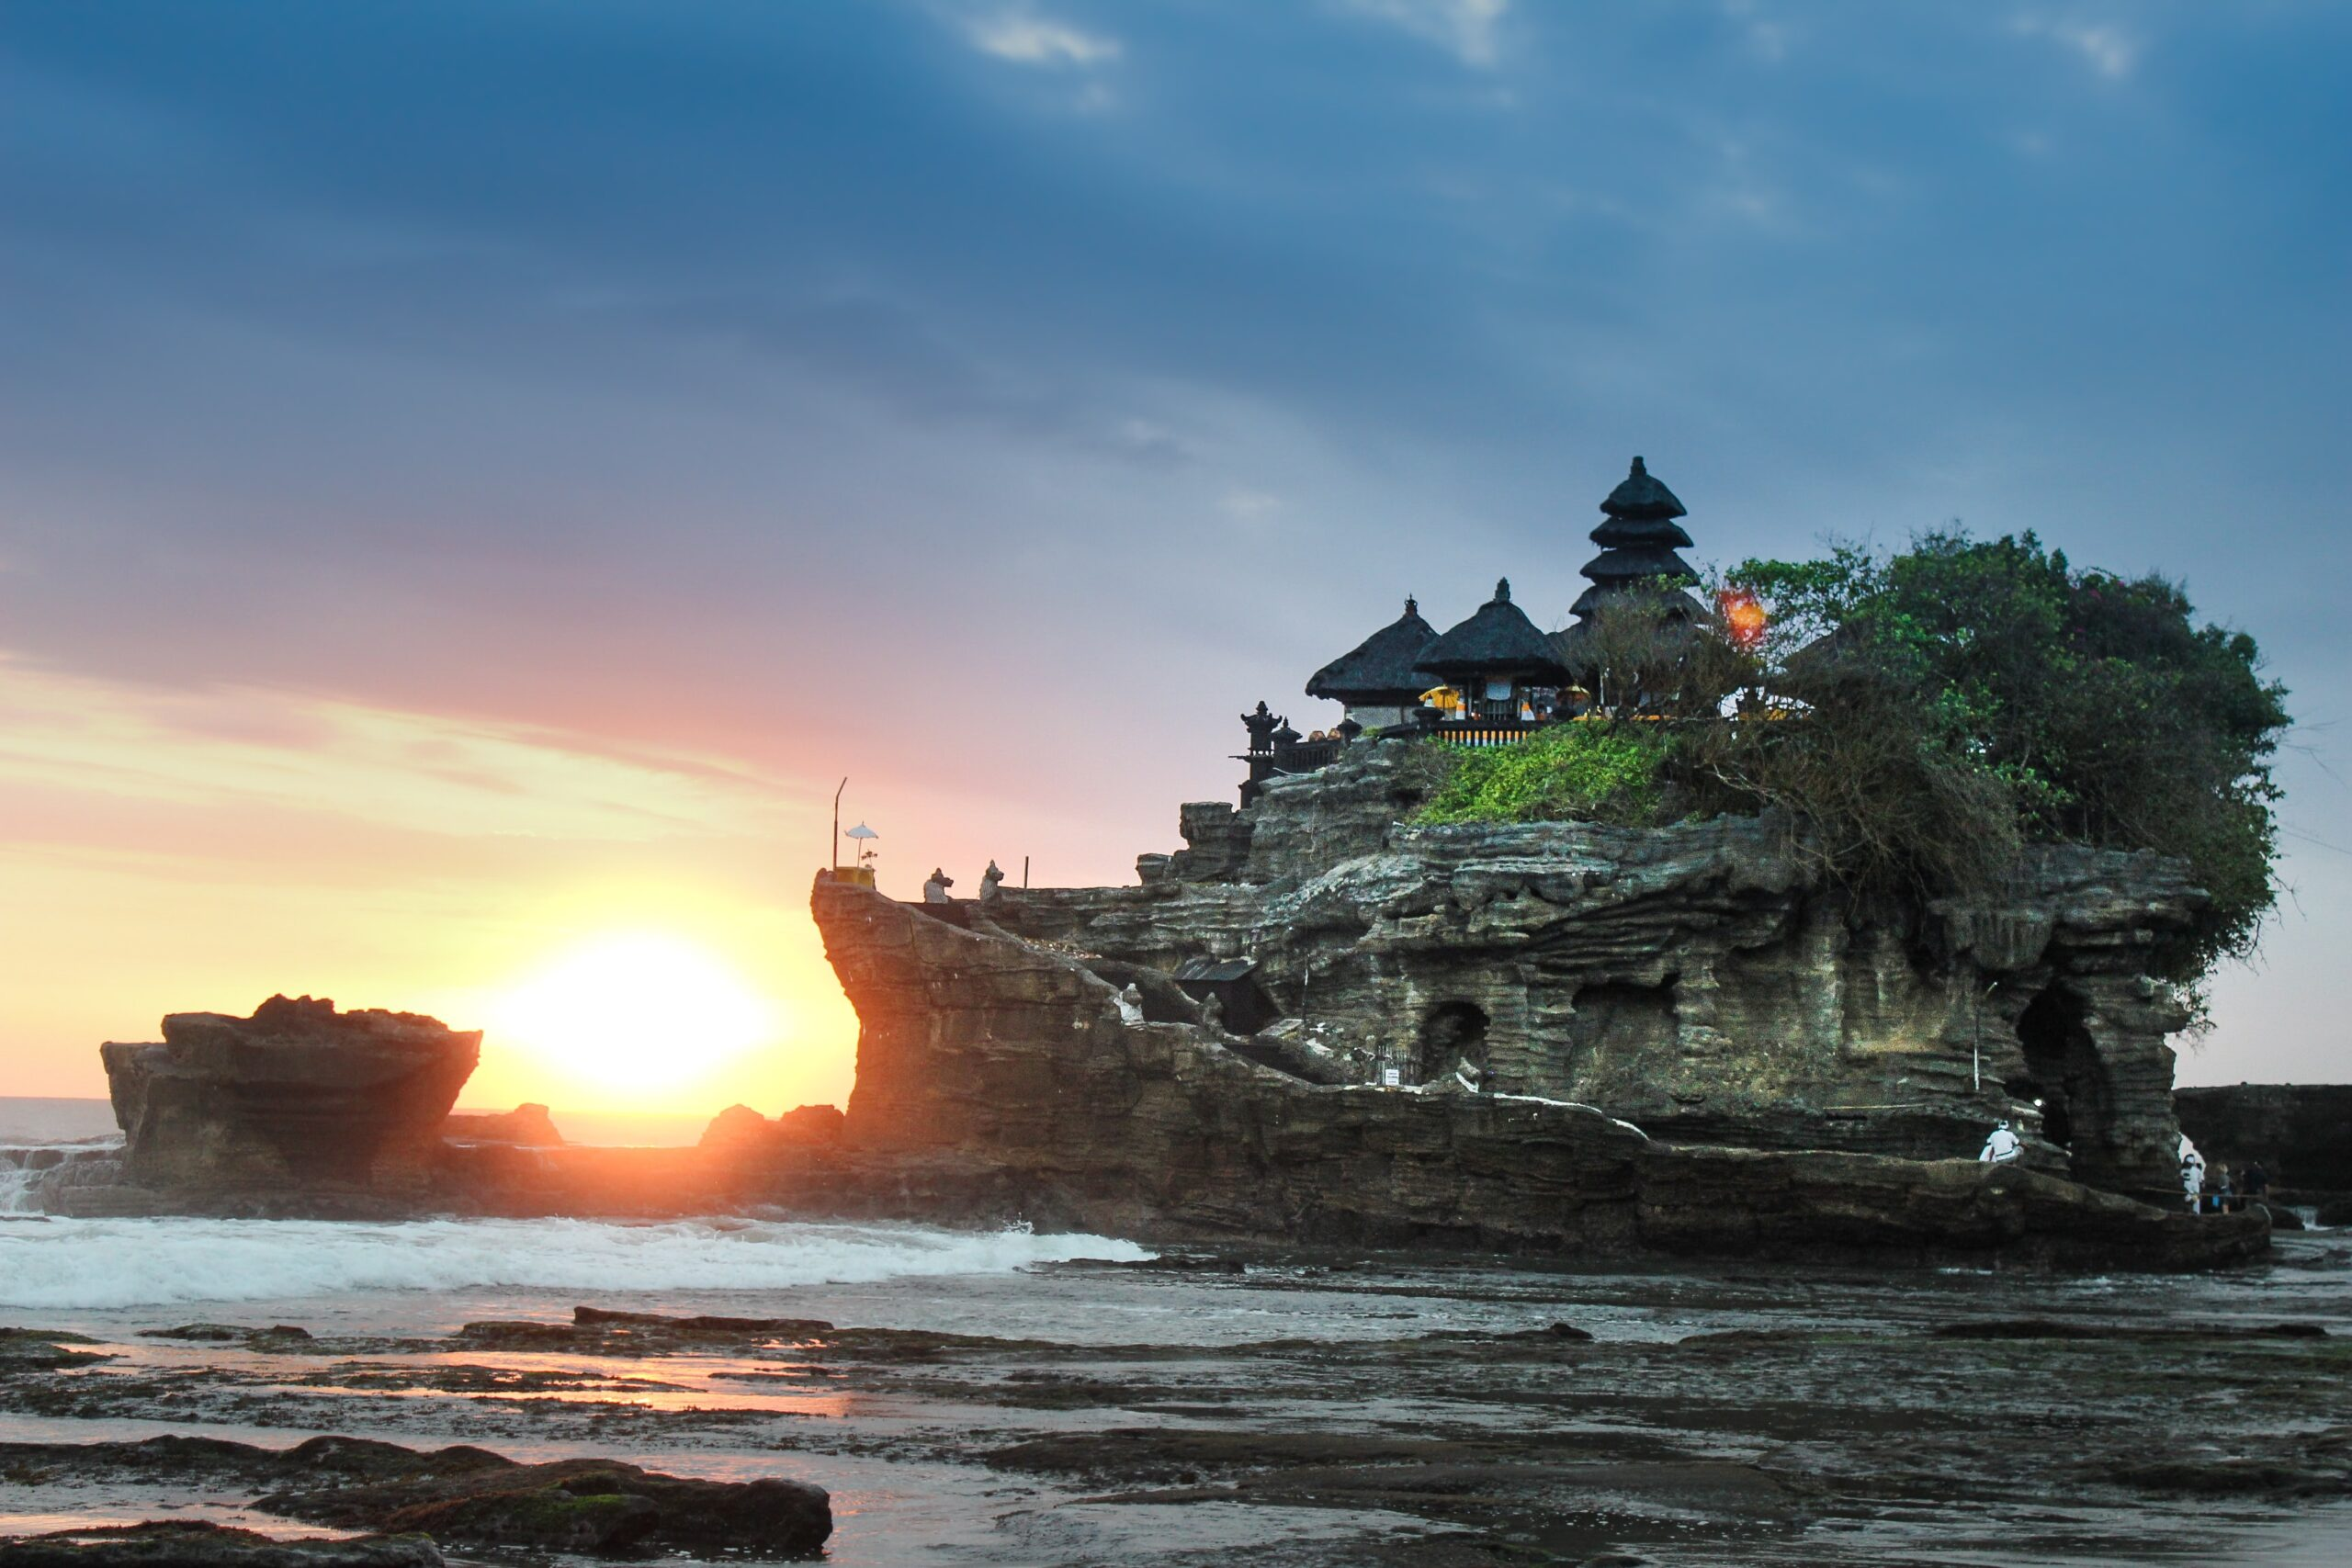 Bali aims to reopen